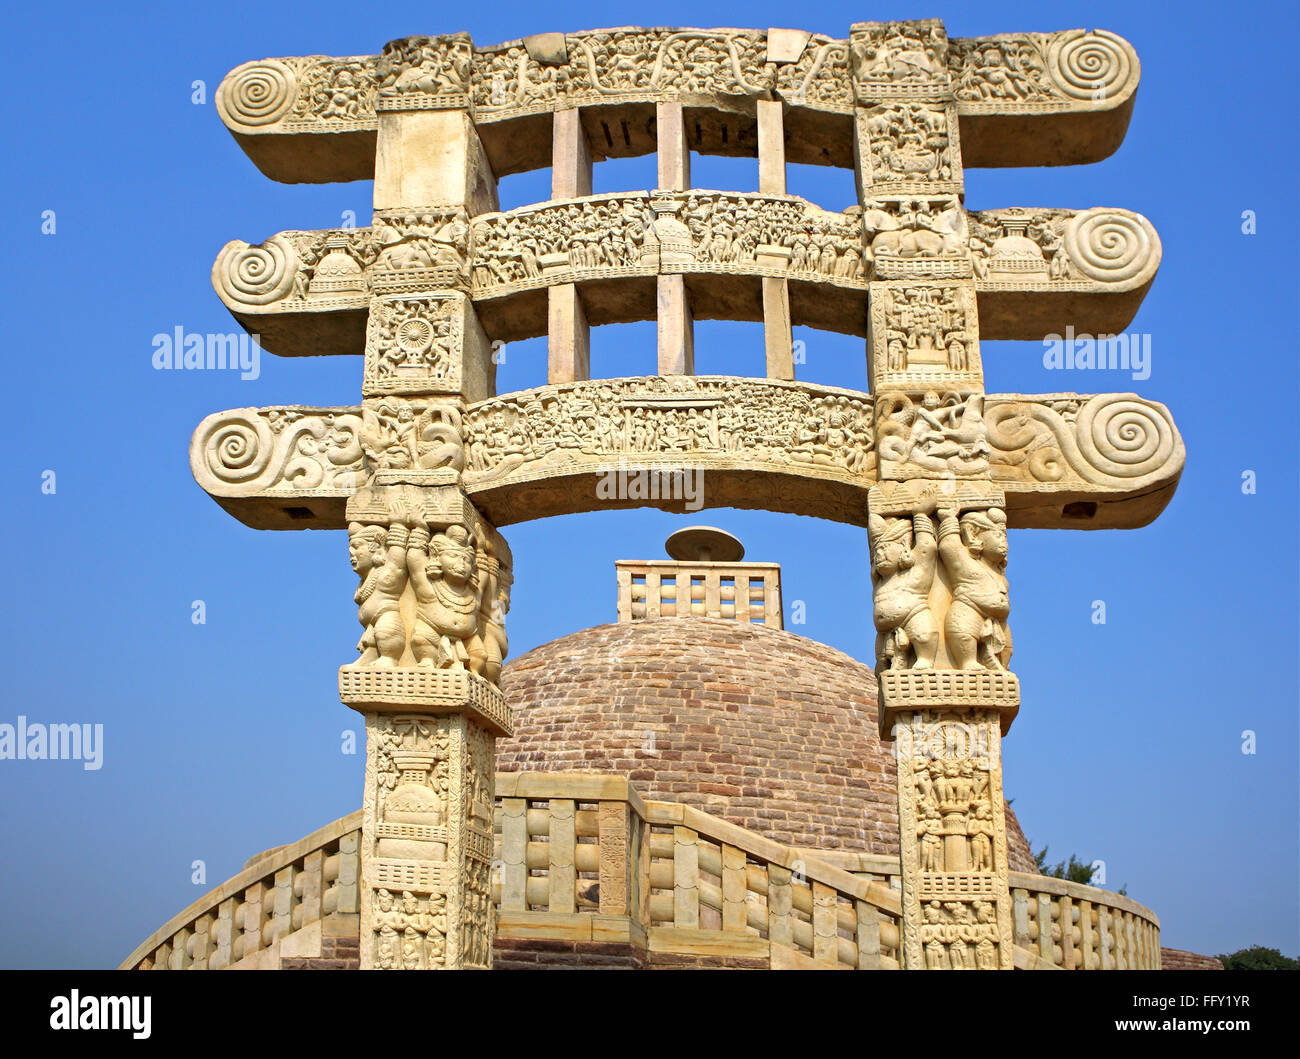 Stupa 3  with gateway in front  situated northeast of main stupa 1 similar design though smaller Sanchi Bhopal Madhya - Stock Image